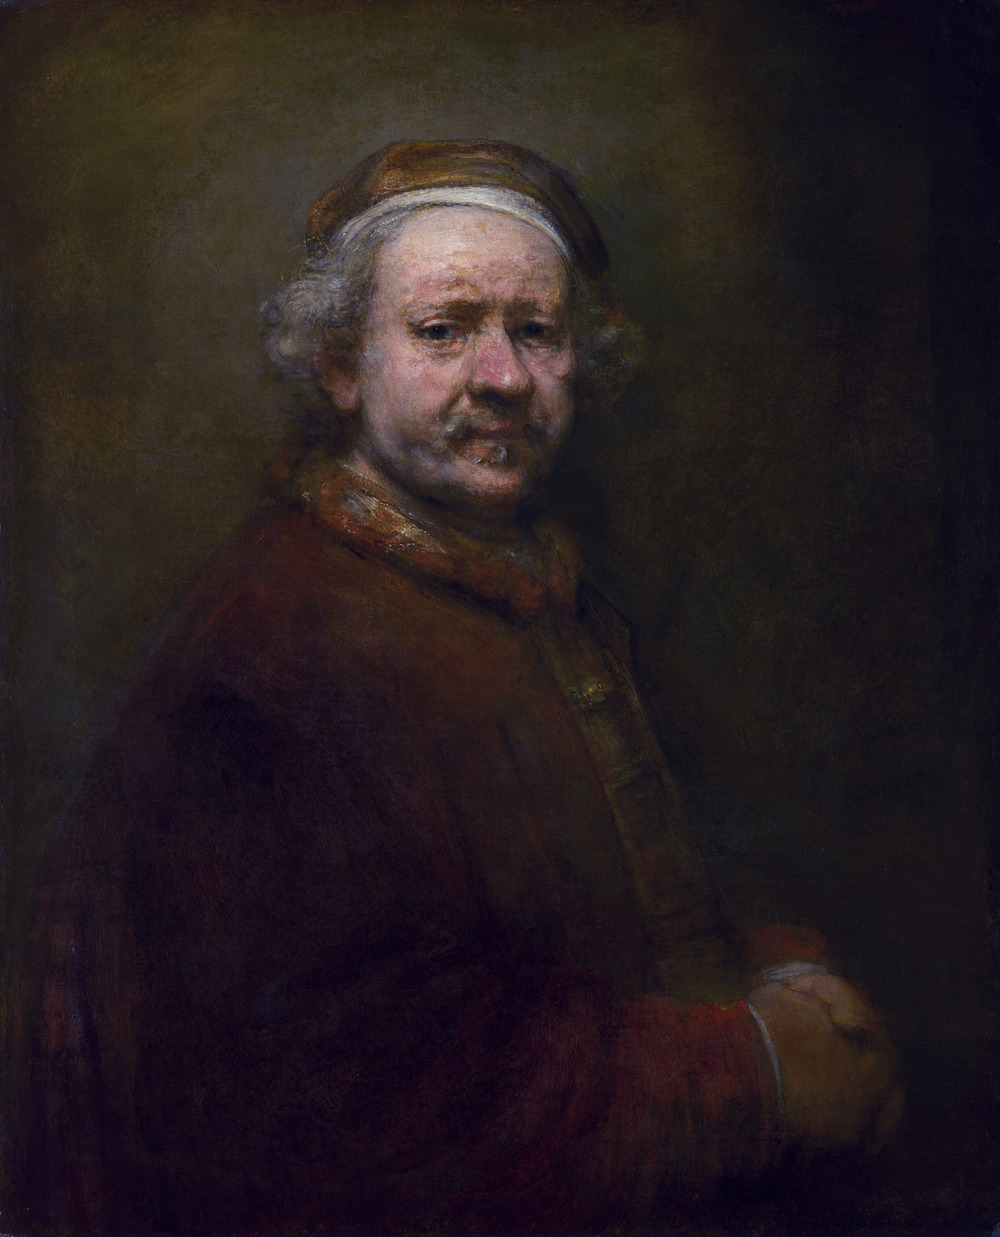 Rembrandt van Rijn,  Self-Portrait,  1669, Oil on canvas